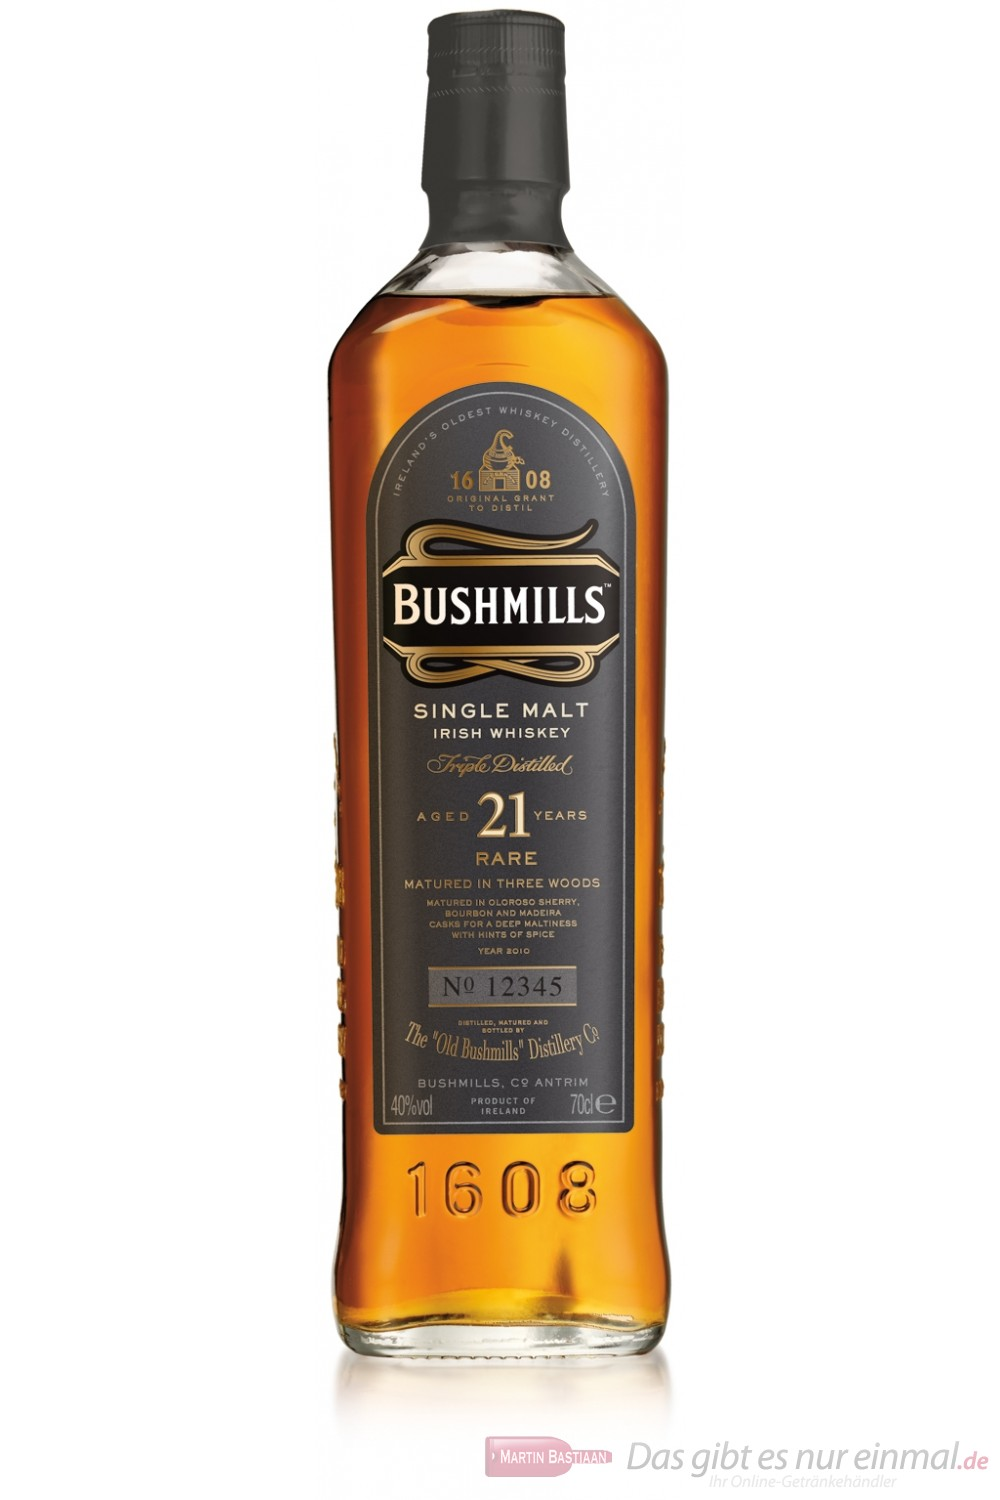 Bushmills 21 Jahre Single Malt Irish Whiskey 40% 0,7l Whisky Flasche